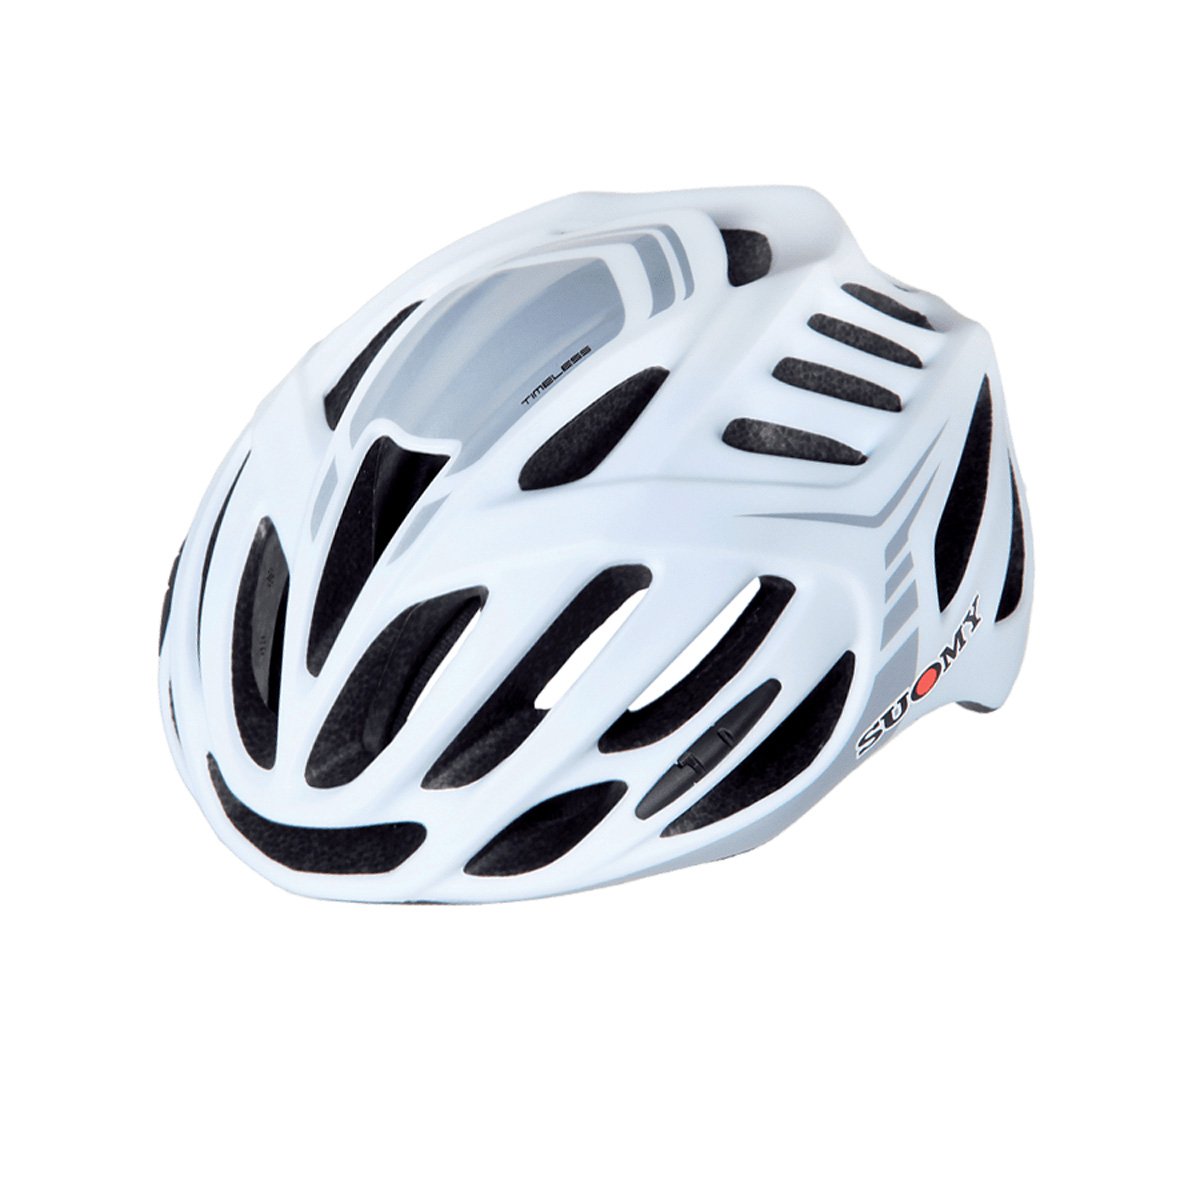 Suomy Timeless Road Cycling Helmet - SMY-TMLS